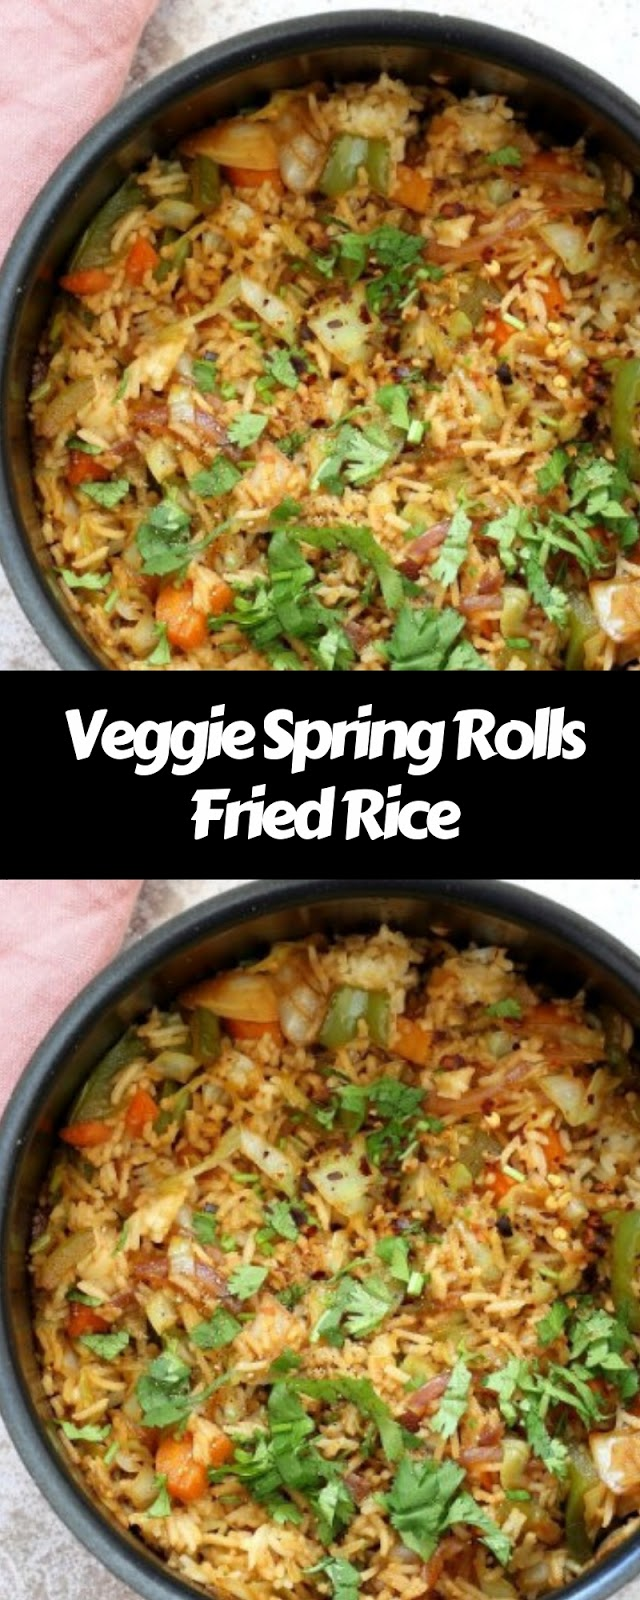 Veggie Spring Rolls Fried Rice